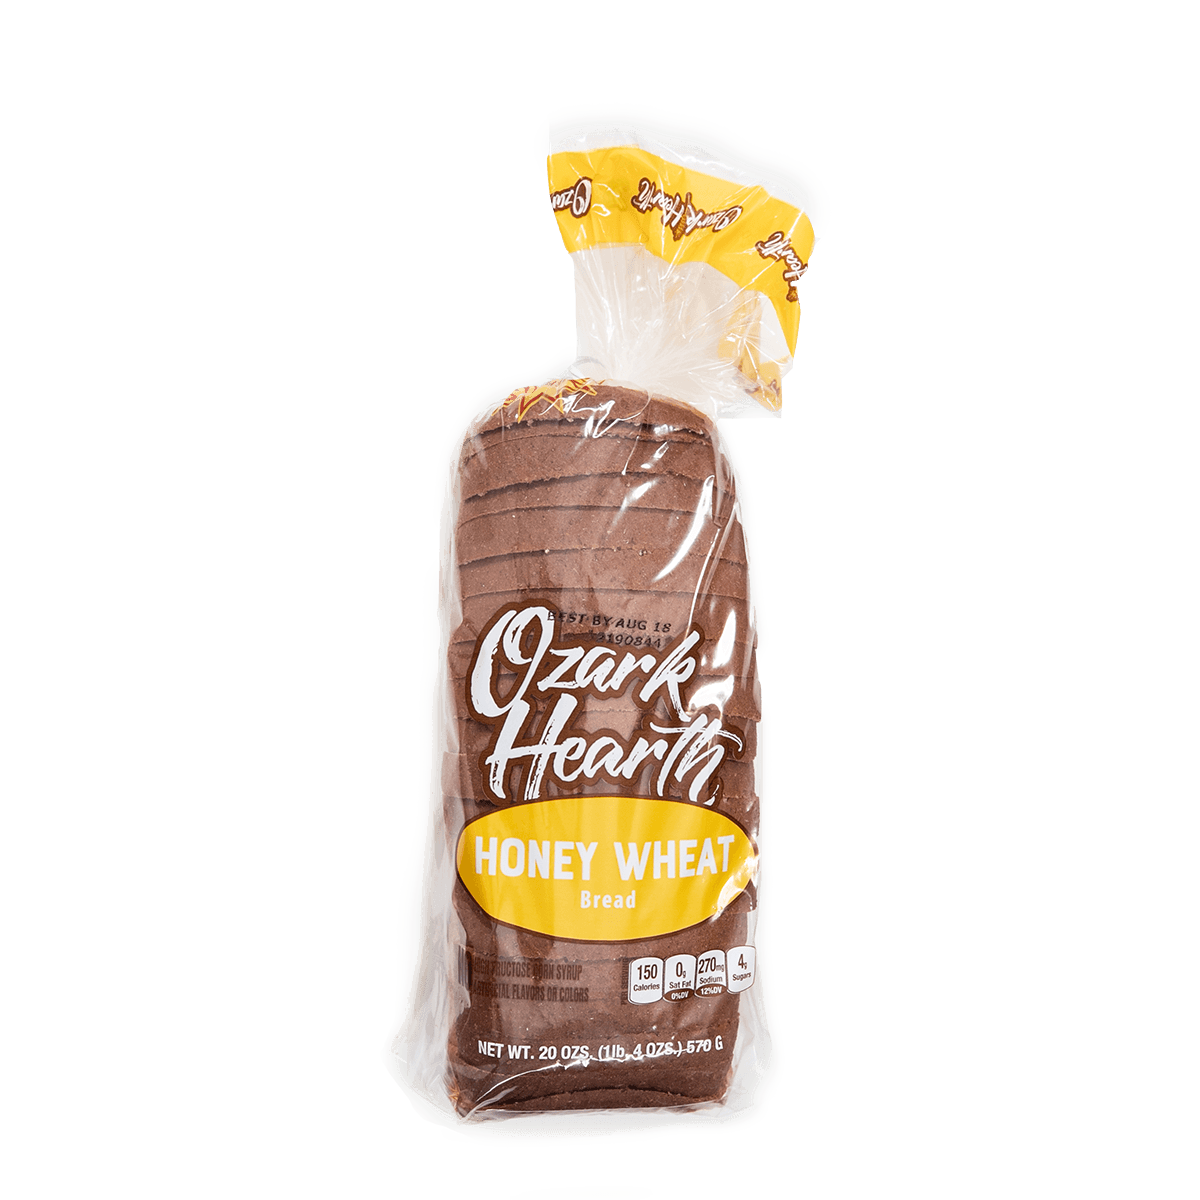 Ozark Hearth Honey Wheat